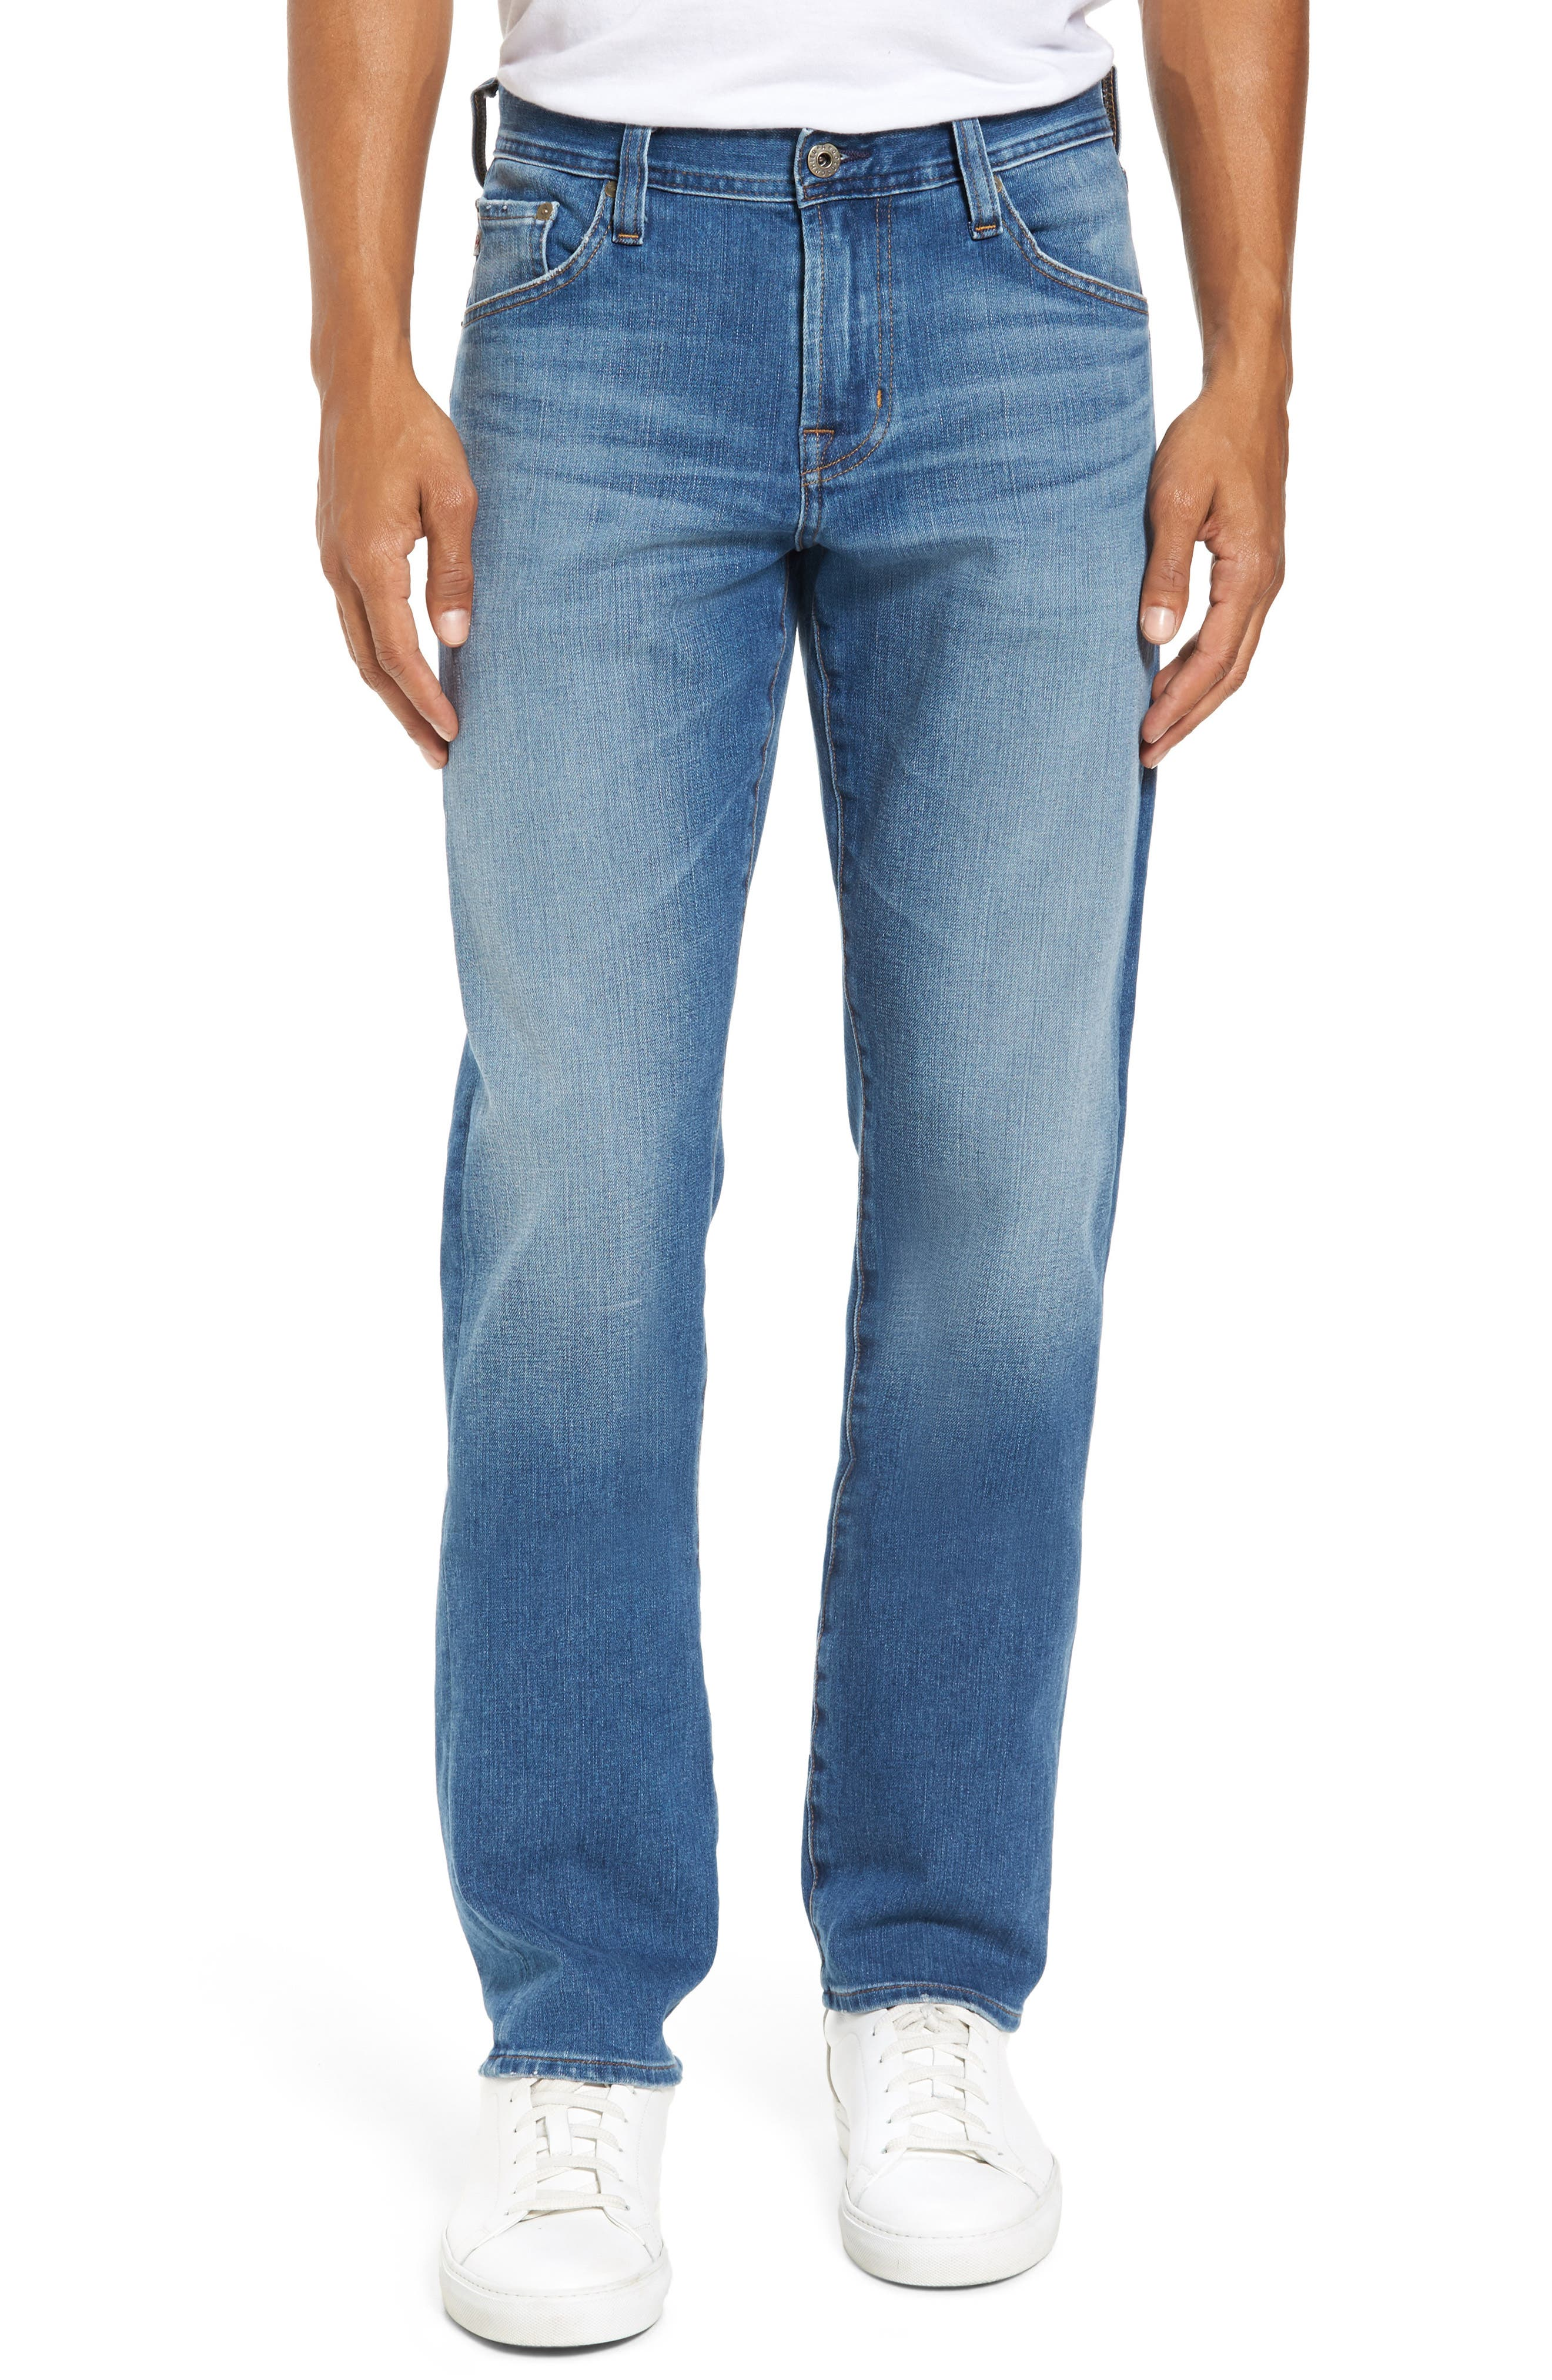 Alternate Image 1 Selected - AG Graduate Slim Straight Fit Jeans (Audition)